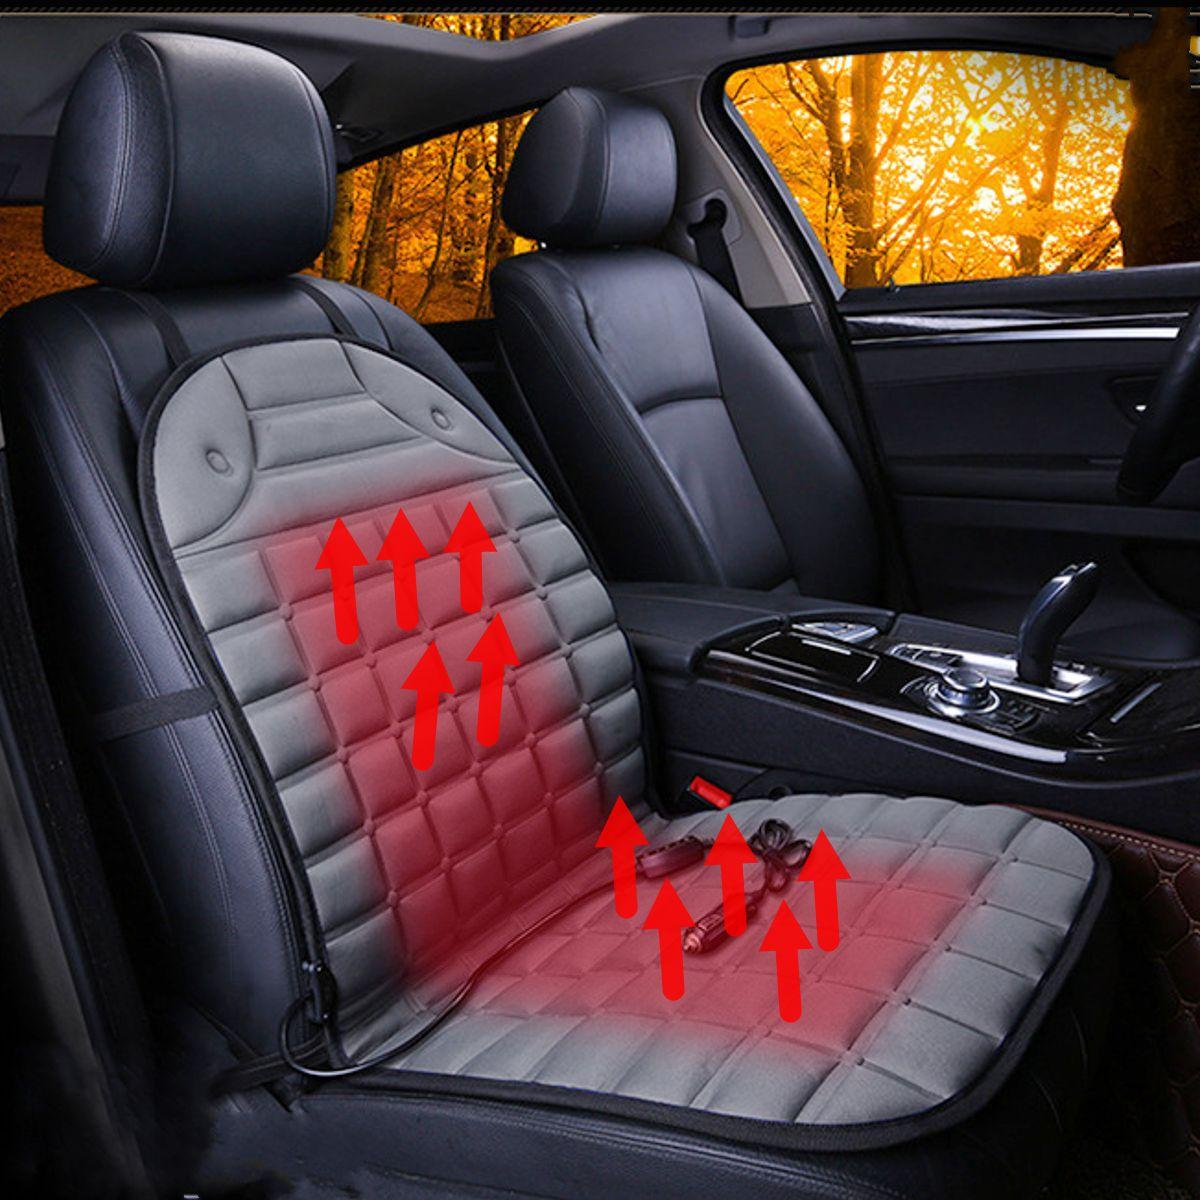 Car Electric Heated Seat Cushion Round Ball Heater Cover DC12V For Warmer Winter